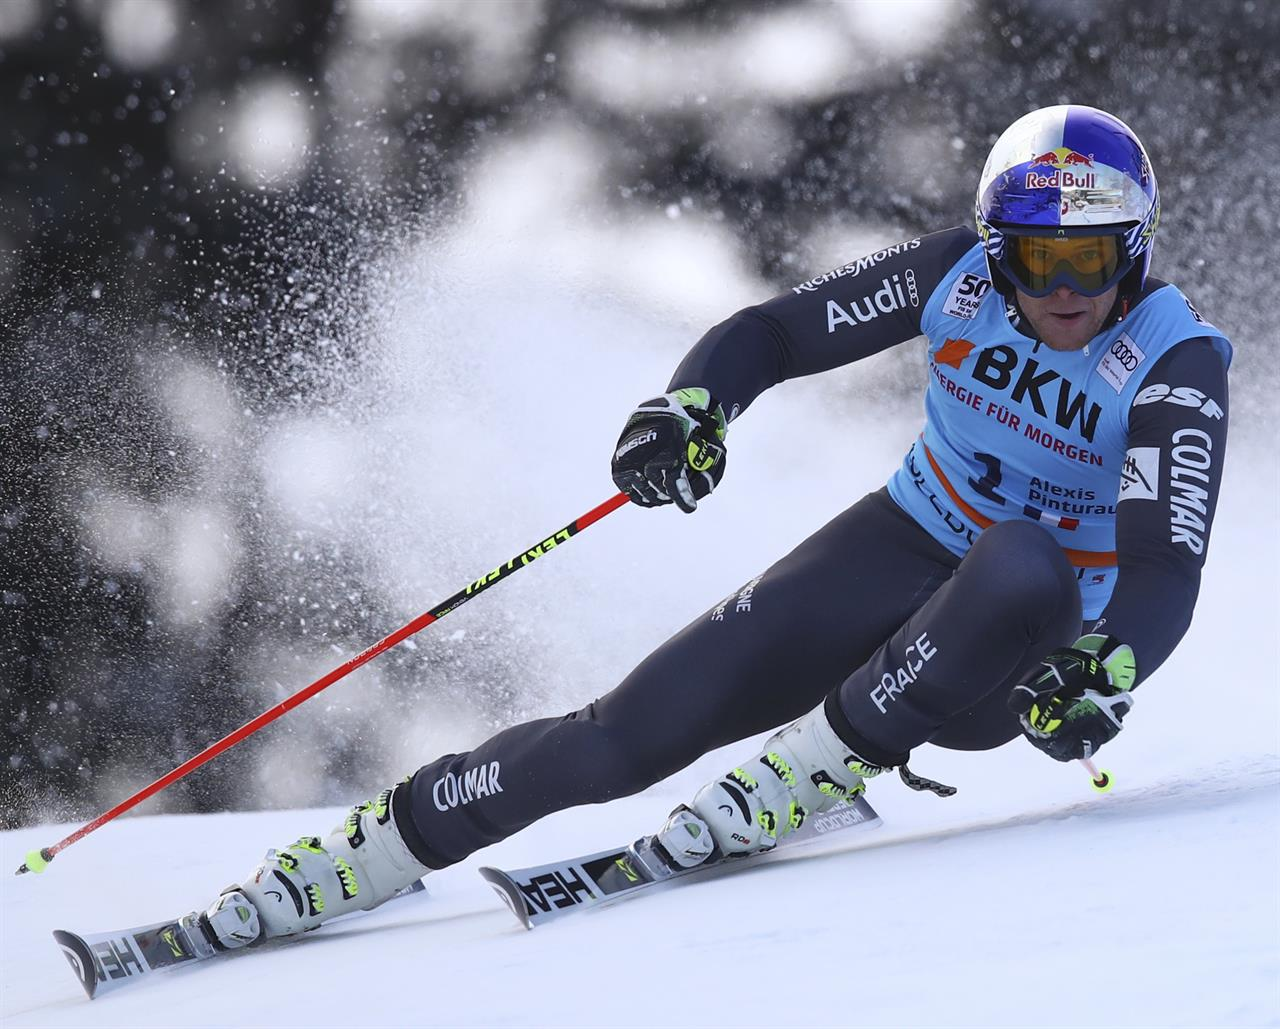 The legendary Chuenisbärgli has a new champion! Frenchman Alexis Pinurault holds on in the second run to win the FIS World Cup GS at Adelboden Saturday. pc; Zoom Agence